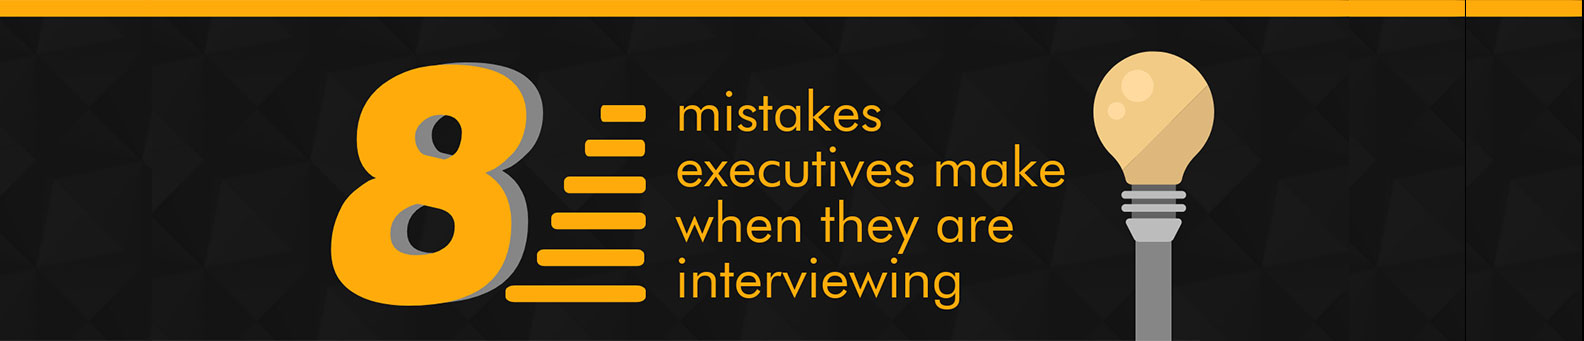 8 mistakes executives make when interviewing